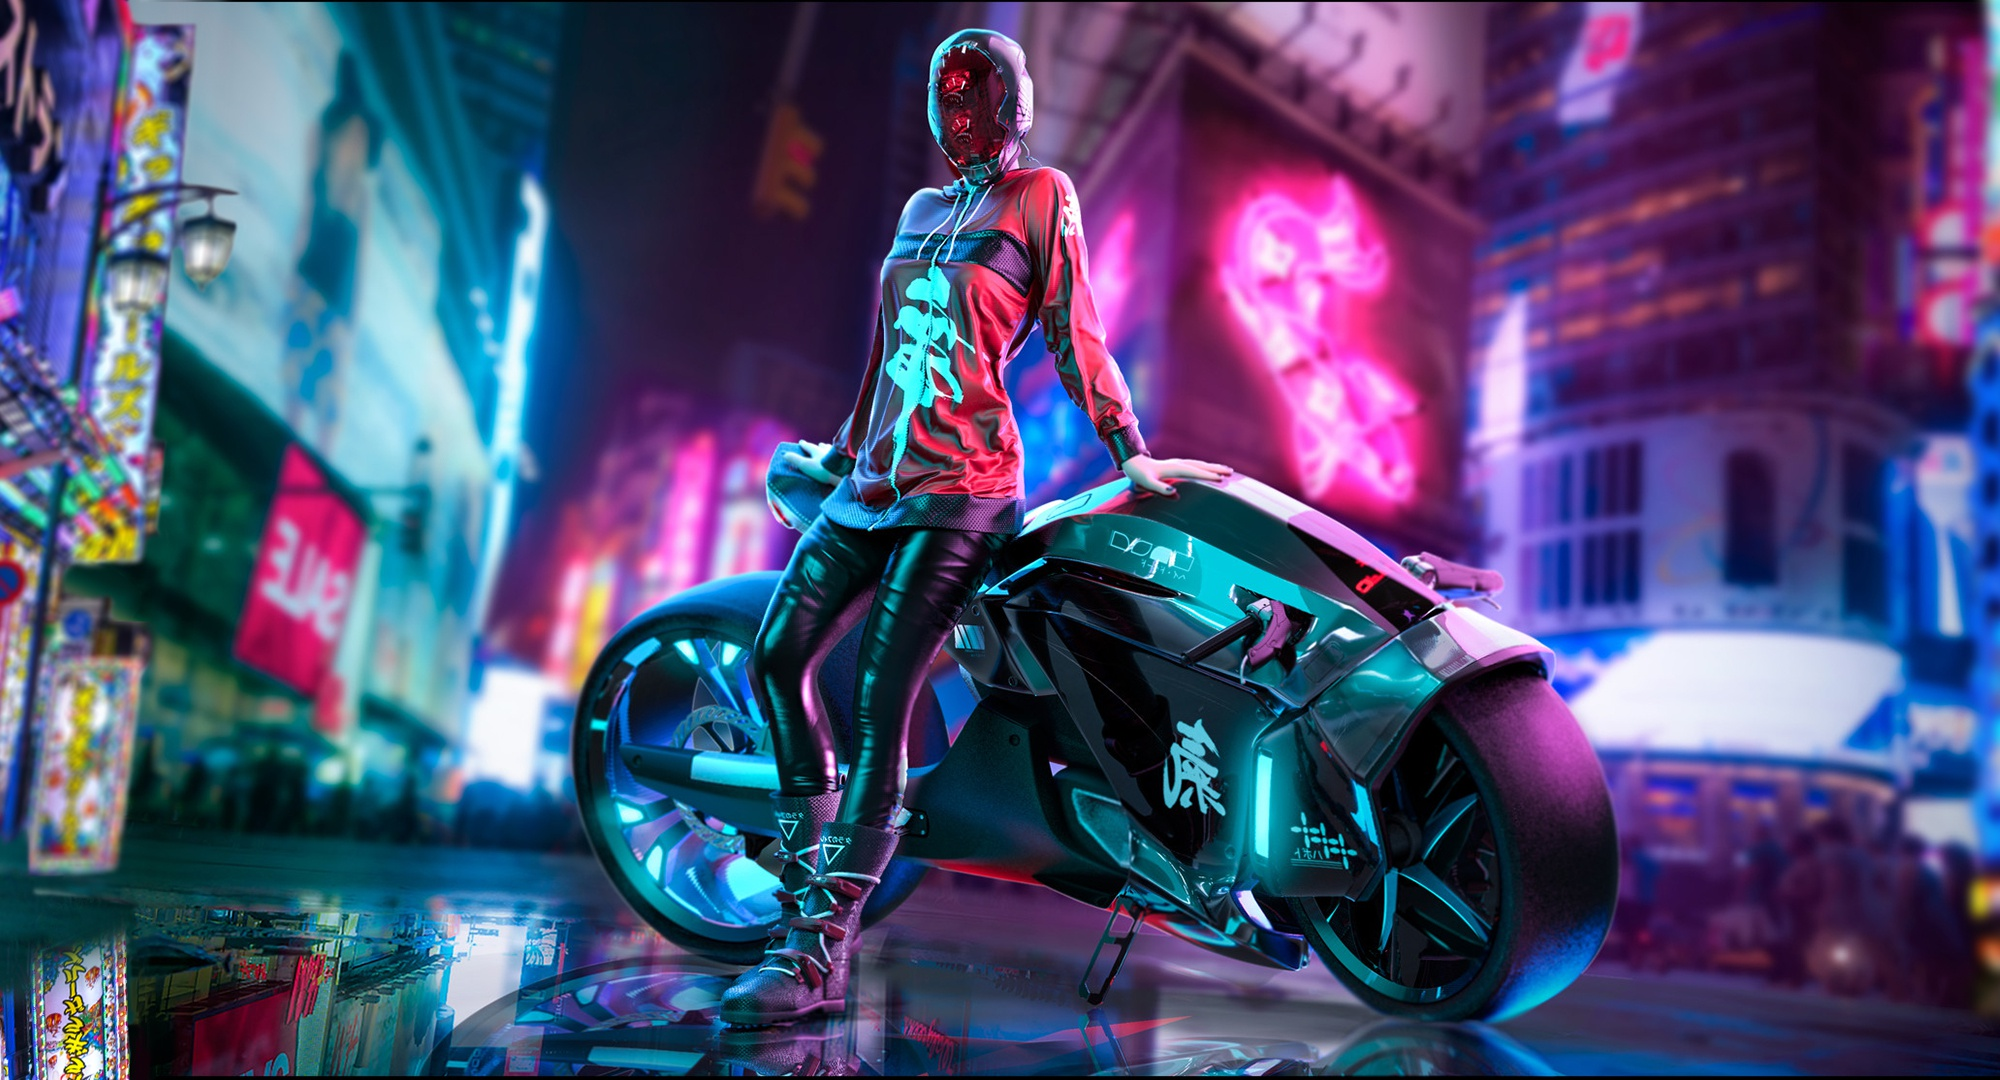 Cyberpunk Scifi Girl With Motorcycle Hd Artist 4k Wallpapers Images Backgrounds Photos And Pictures